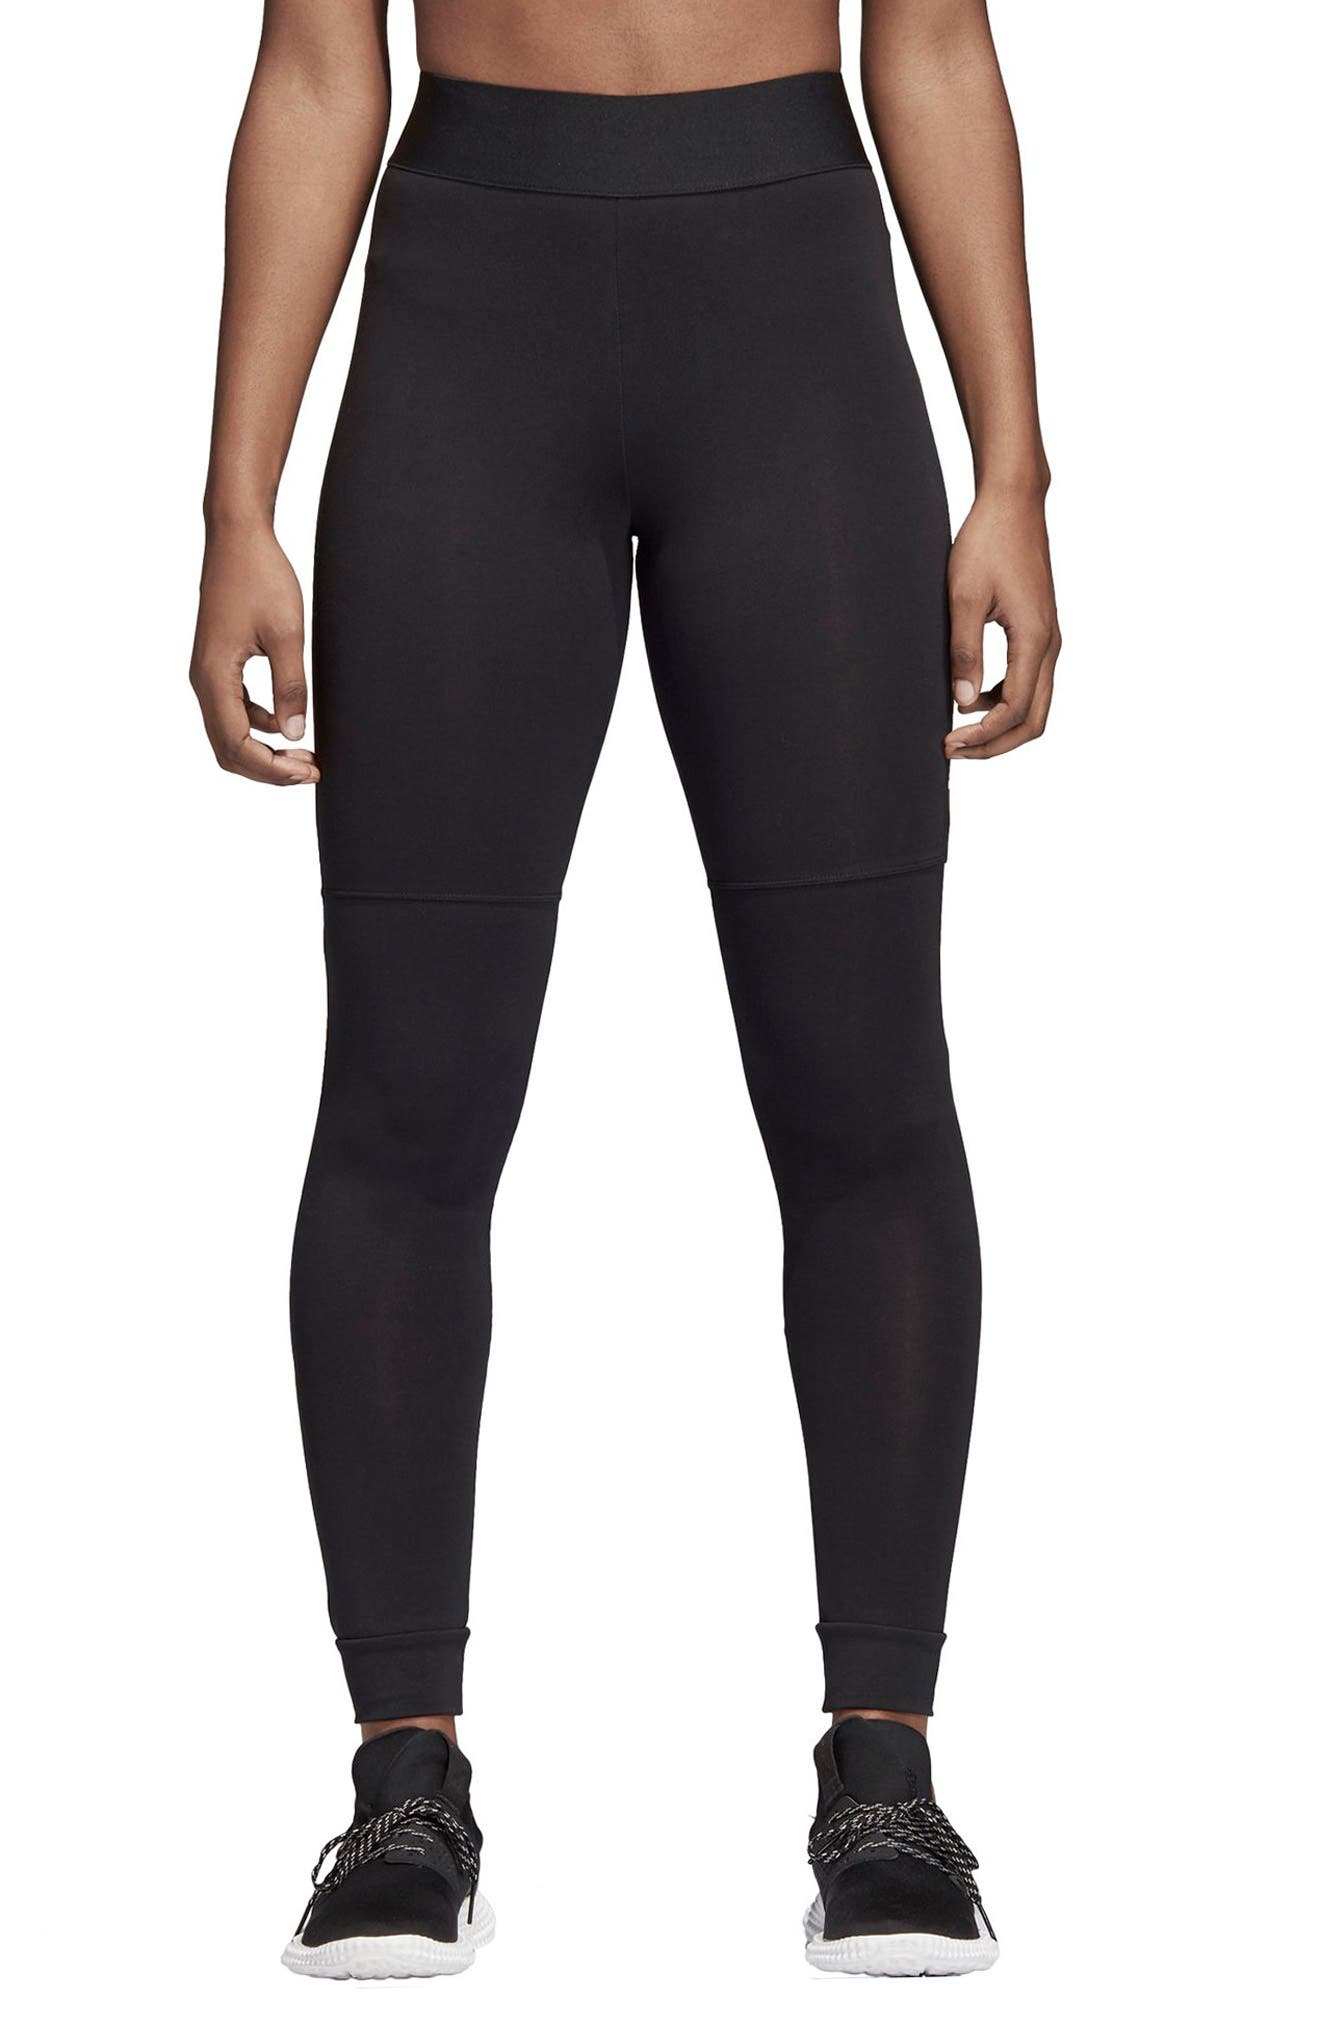 7/8 Leggings,                         Main,                         color, Black